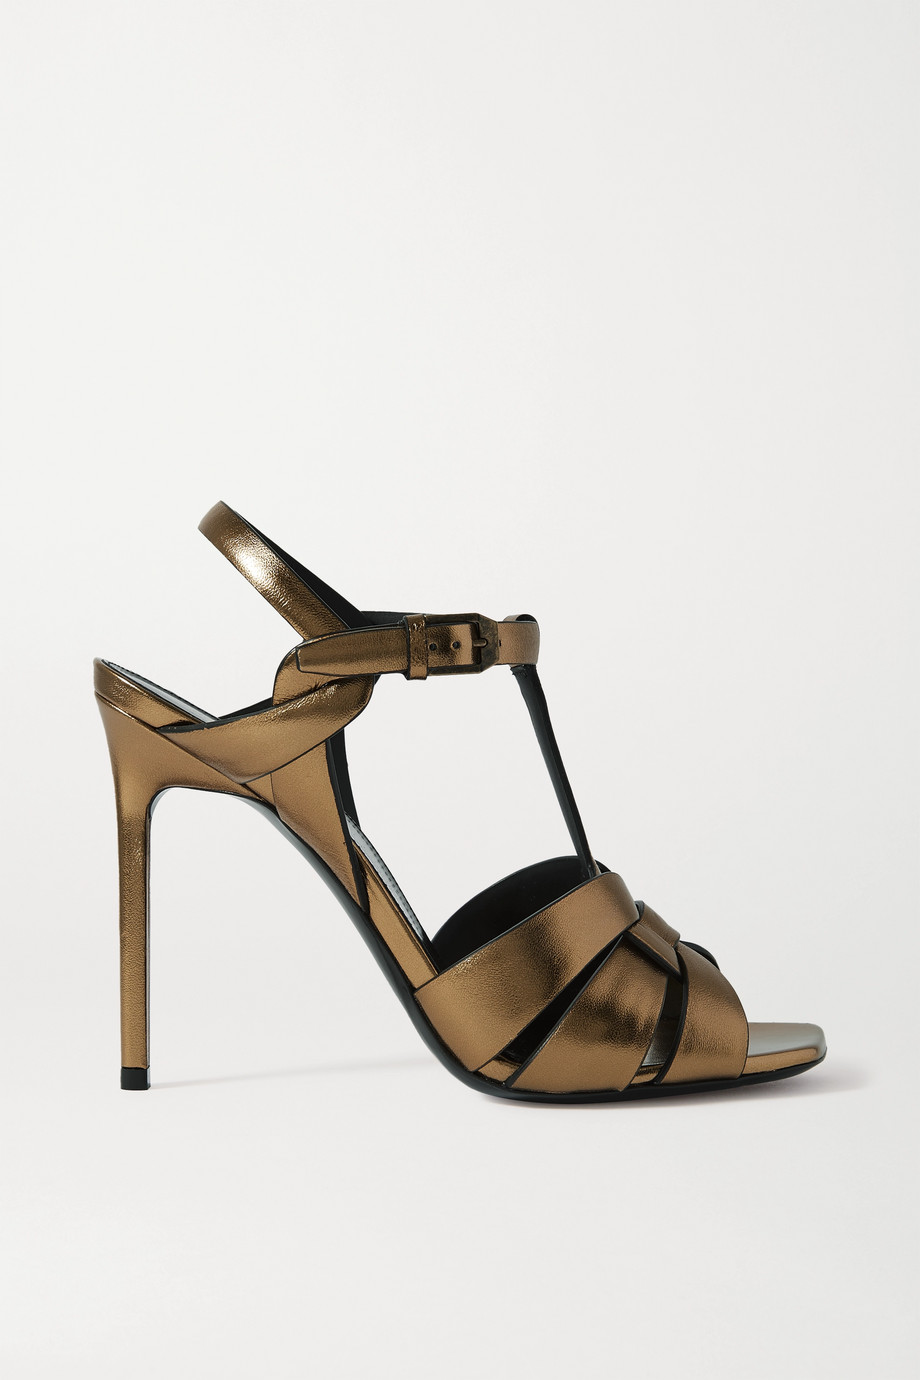 SAINT LAURENT Catri woven metallic leather sandals